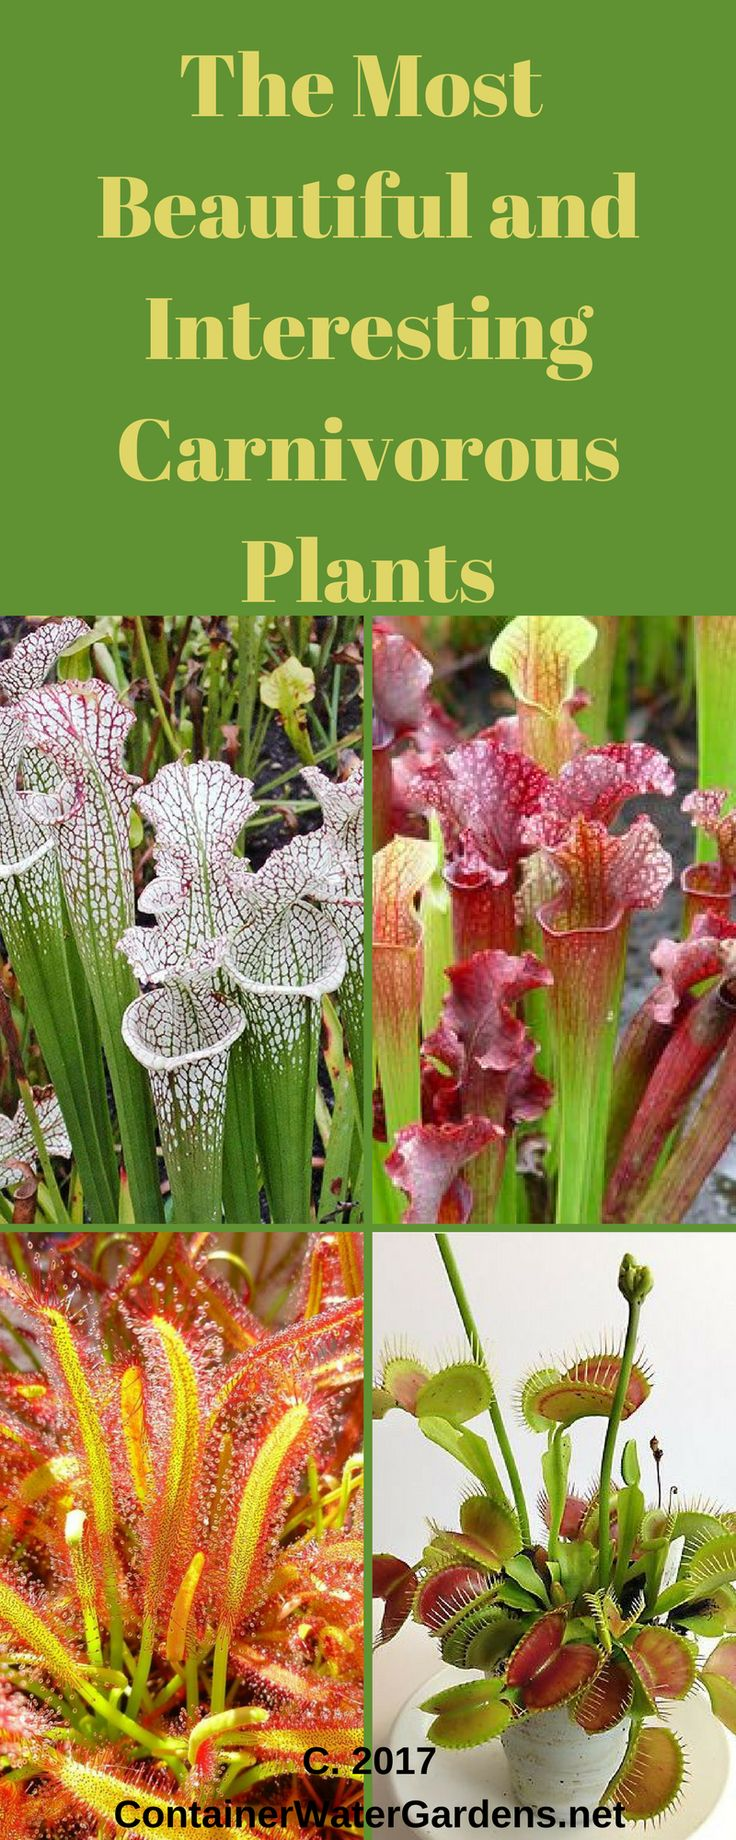 Top right and left: hardy pitcher plants (Sarracenia species), bottom left: Sundew plants (Drosera sp.), bottom right: Venus fly traps (Dionaea sp.). Read how you can create and care for an awesome carnivorous terrarium @ www.containerwatergardens.net/create-fascinating-carnivorous-terrarium/